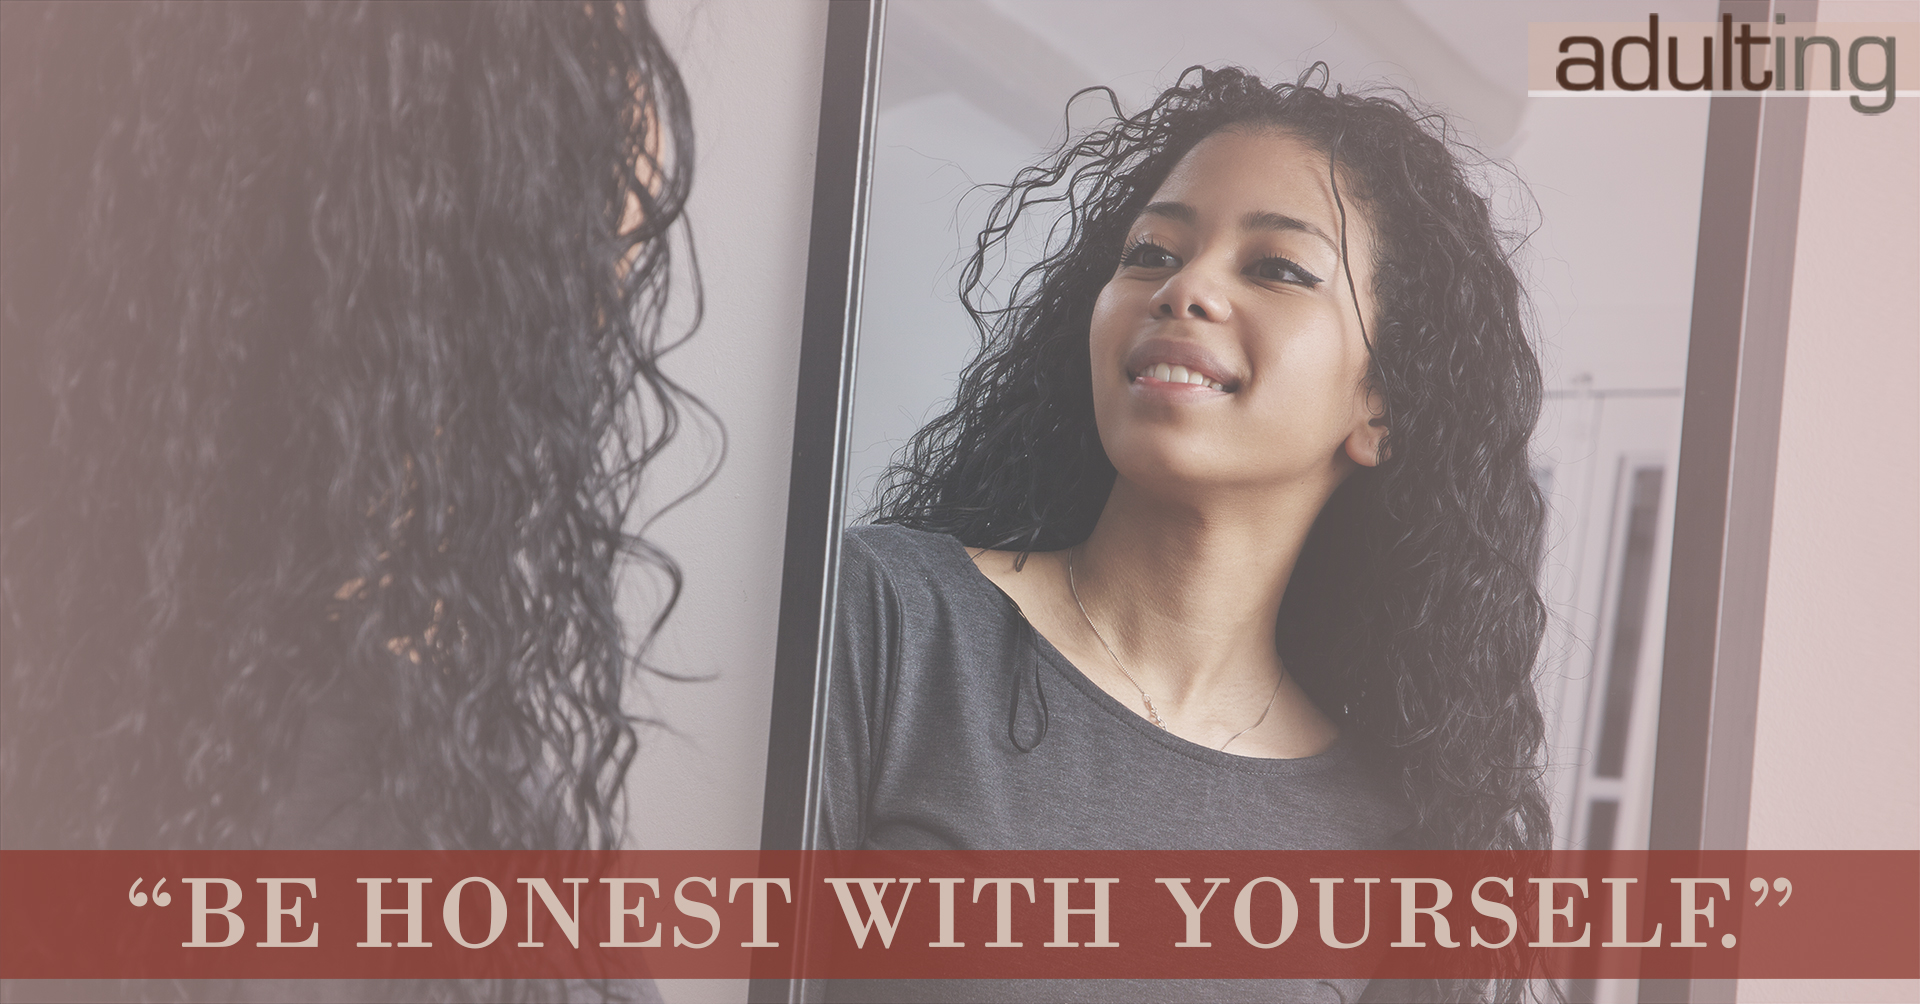 Start Adulting With These Awesome Instructions: Be Honest With Yourself